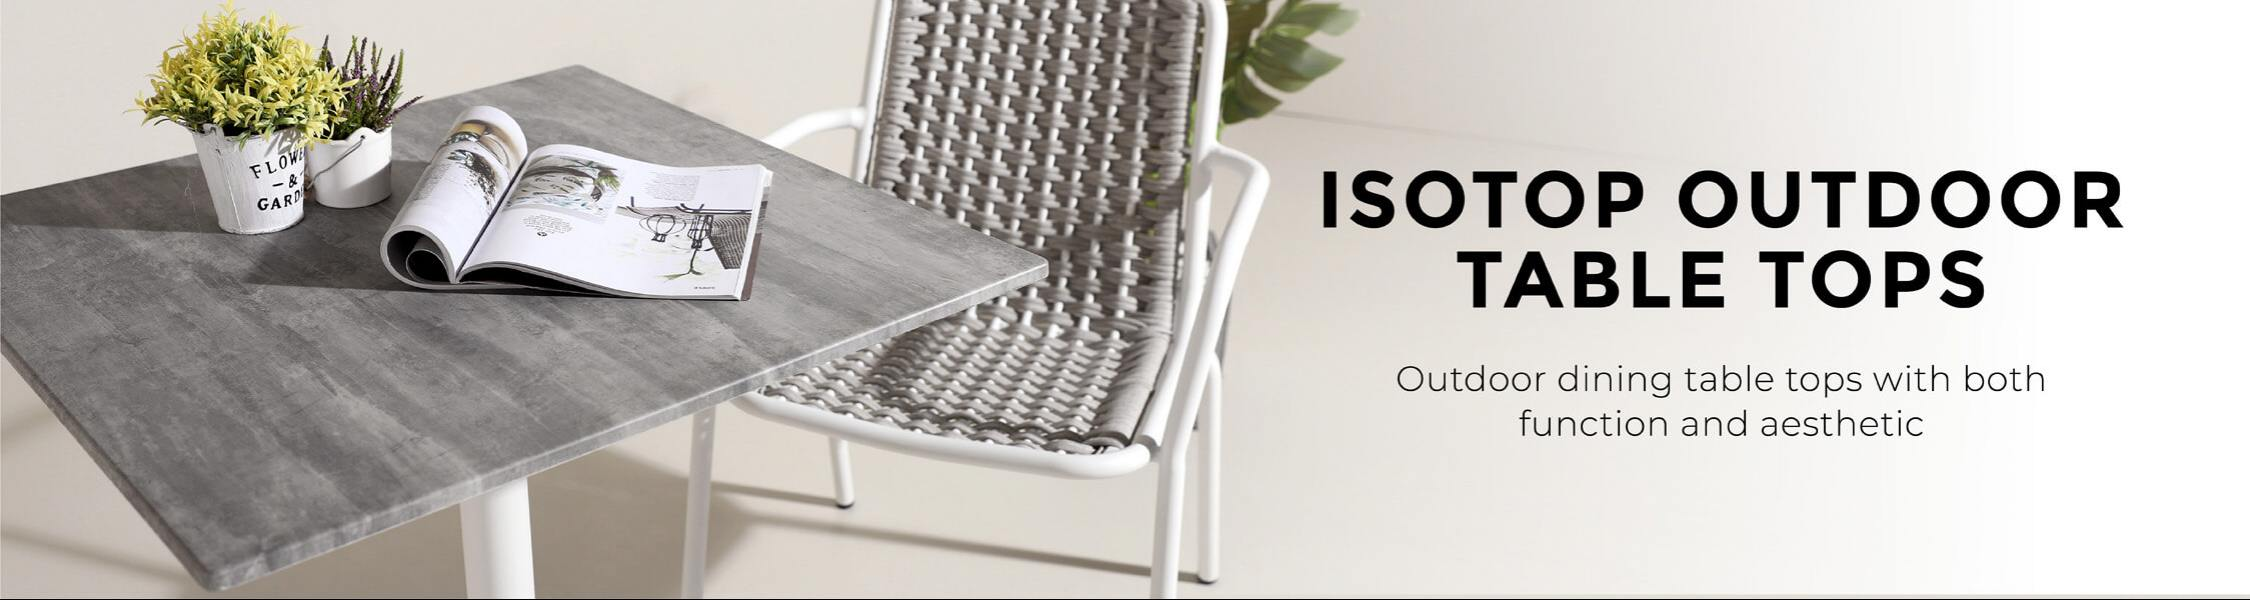 Isotop Outdoor Table Tops